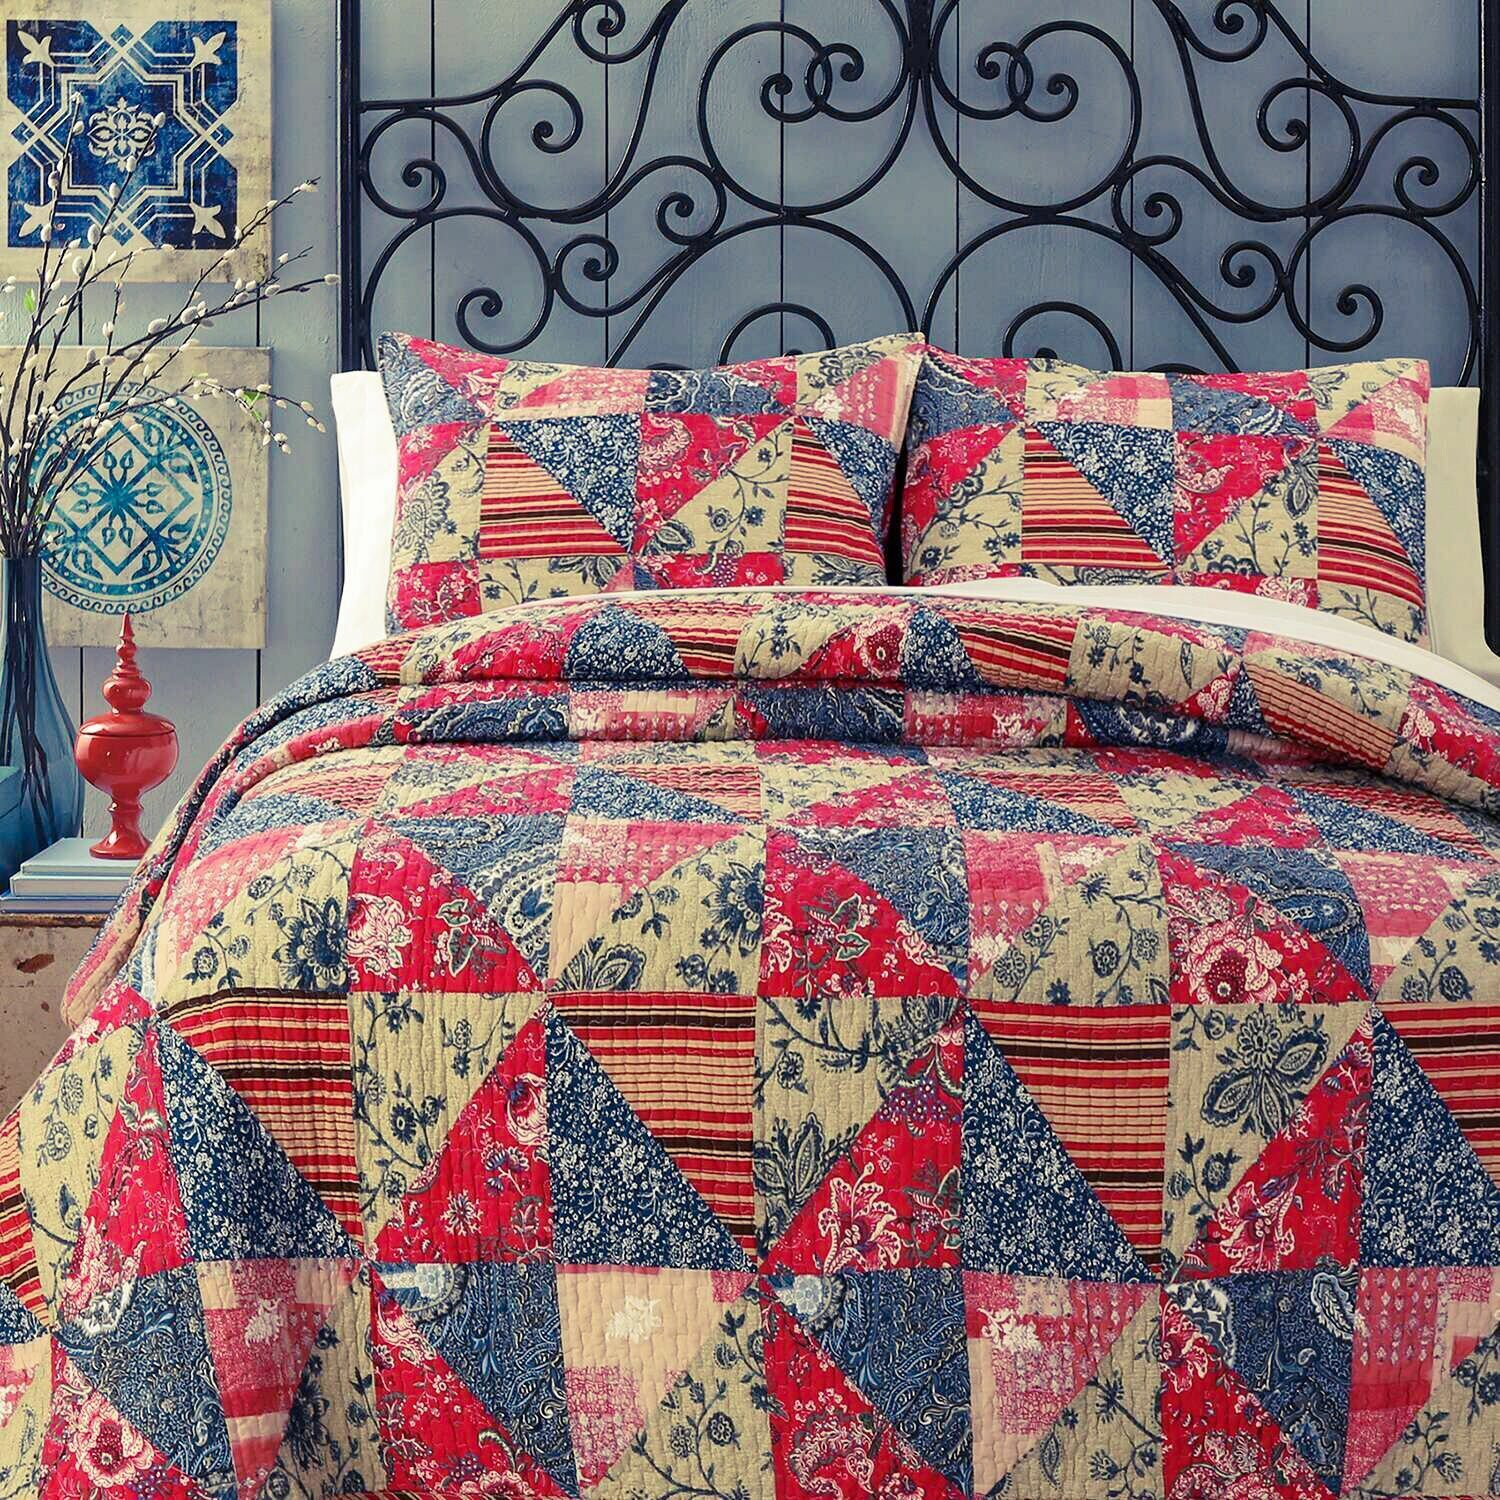 Red pink Garden 100%Cotton Twin-Size Quilt Set, Bedspread, Coverlet